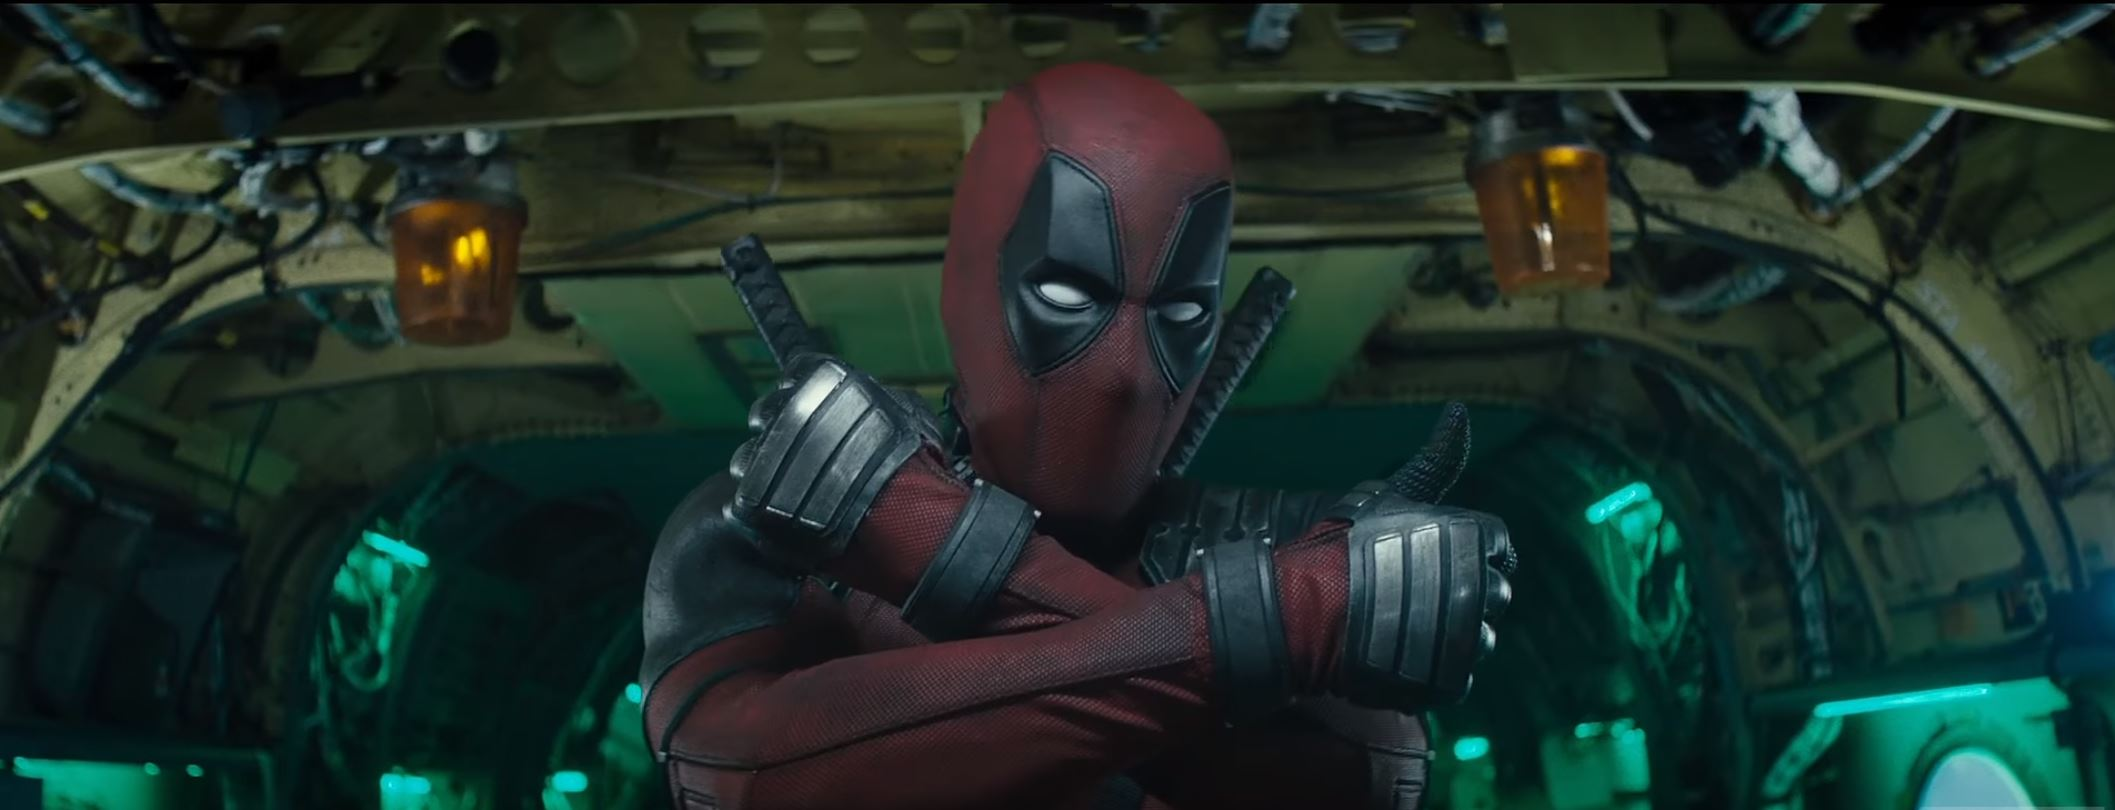 DEADPOOL 2 Trailer #3